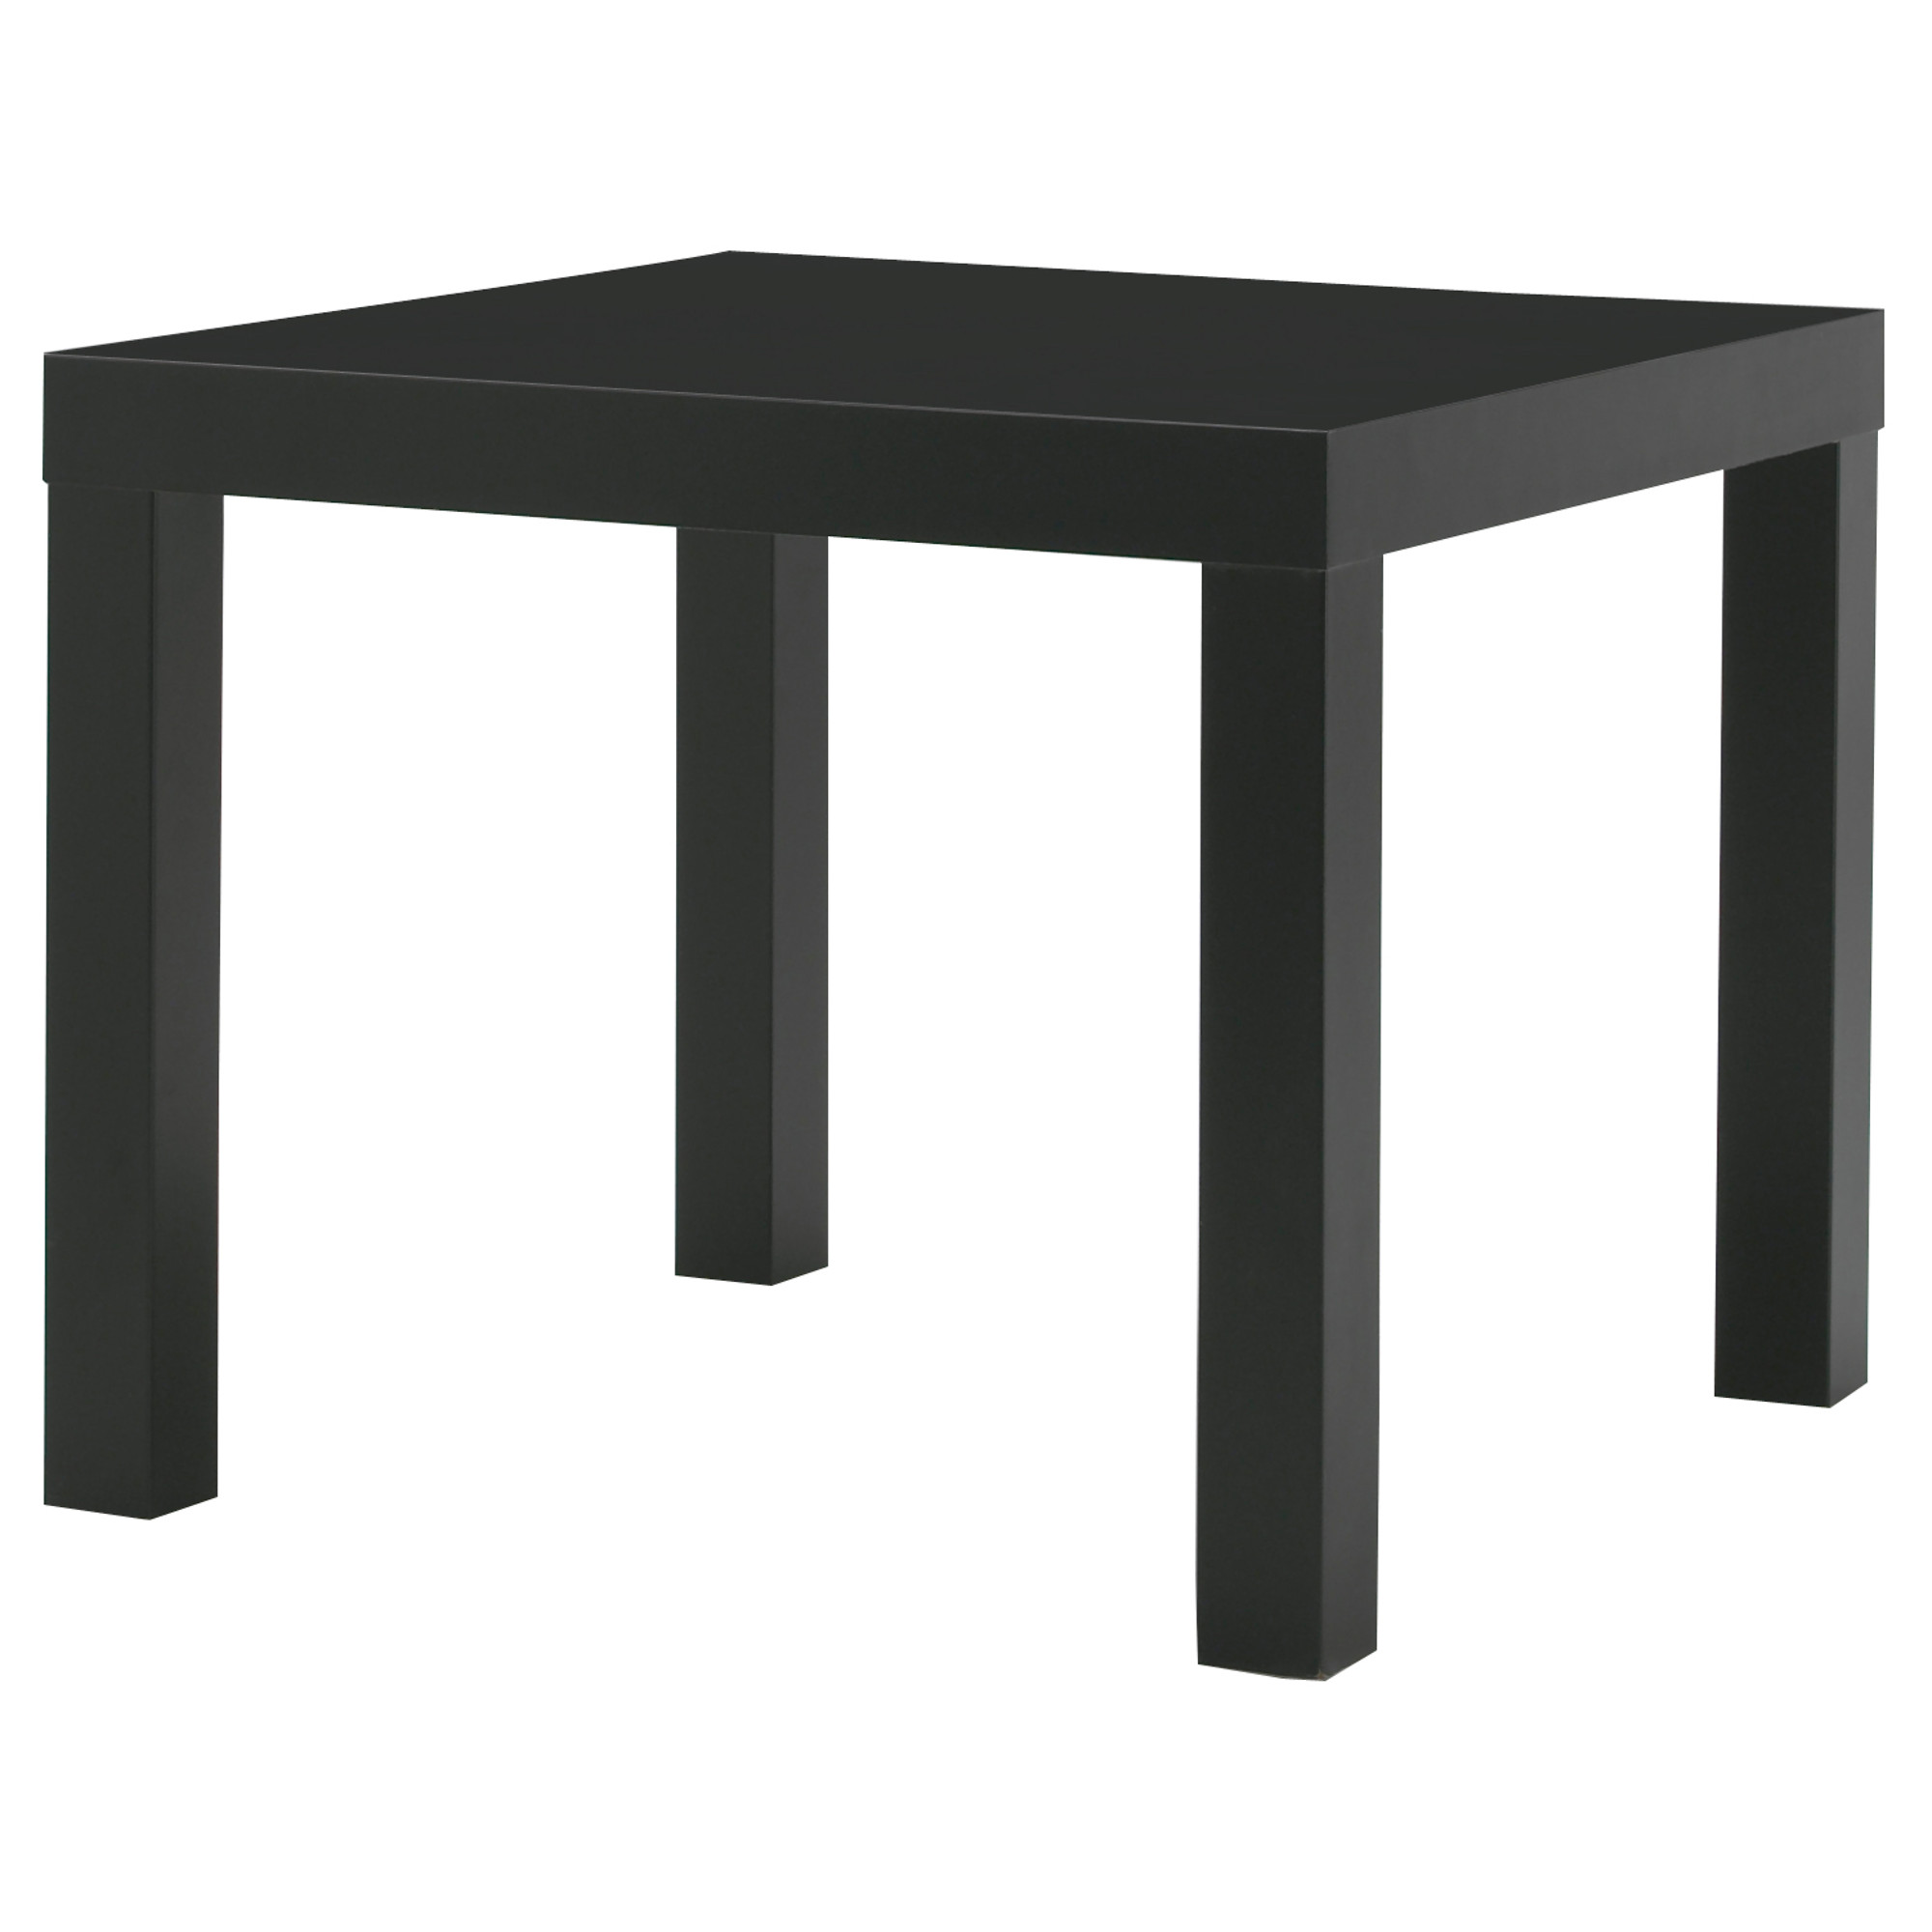 ikea lack side table black easy assemble accent tables for living room cylinder lamp modern lucite legs and bases target marble top carpet threshold trim luxury garden furniture